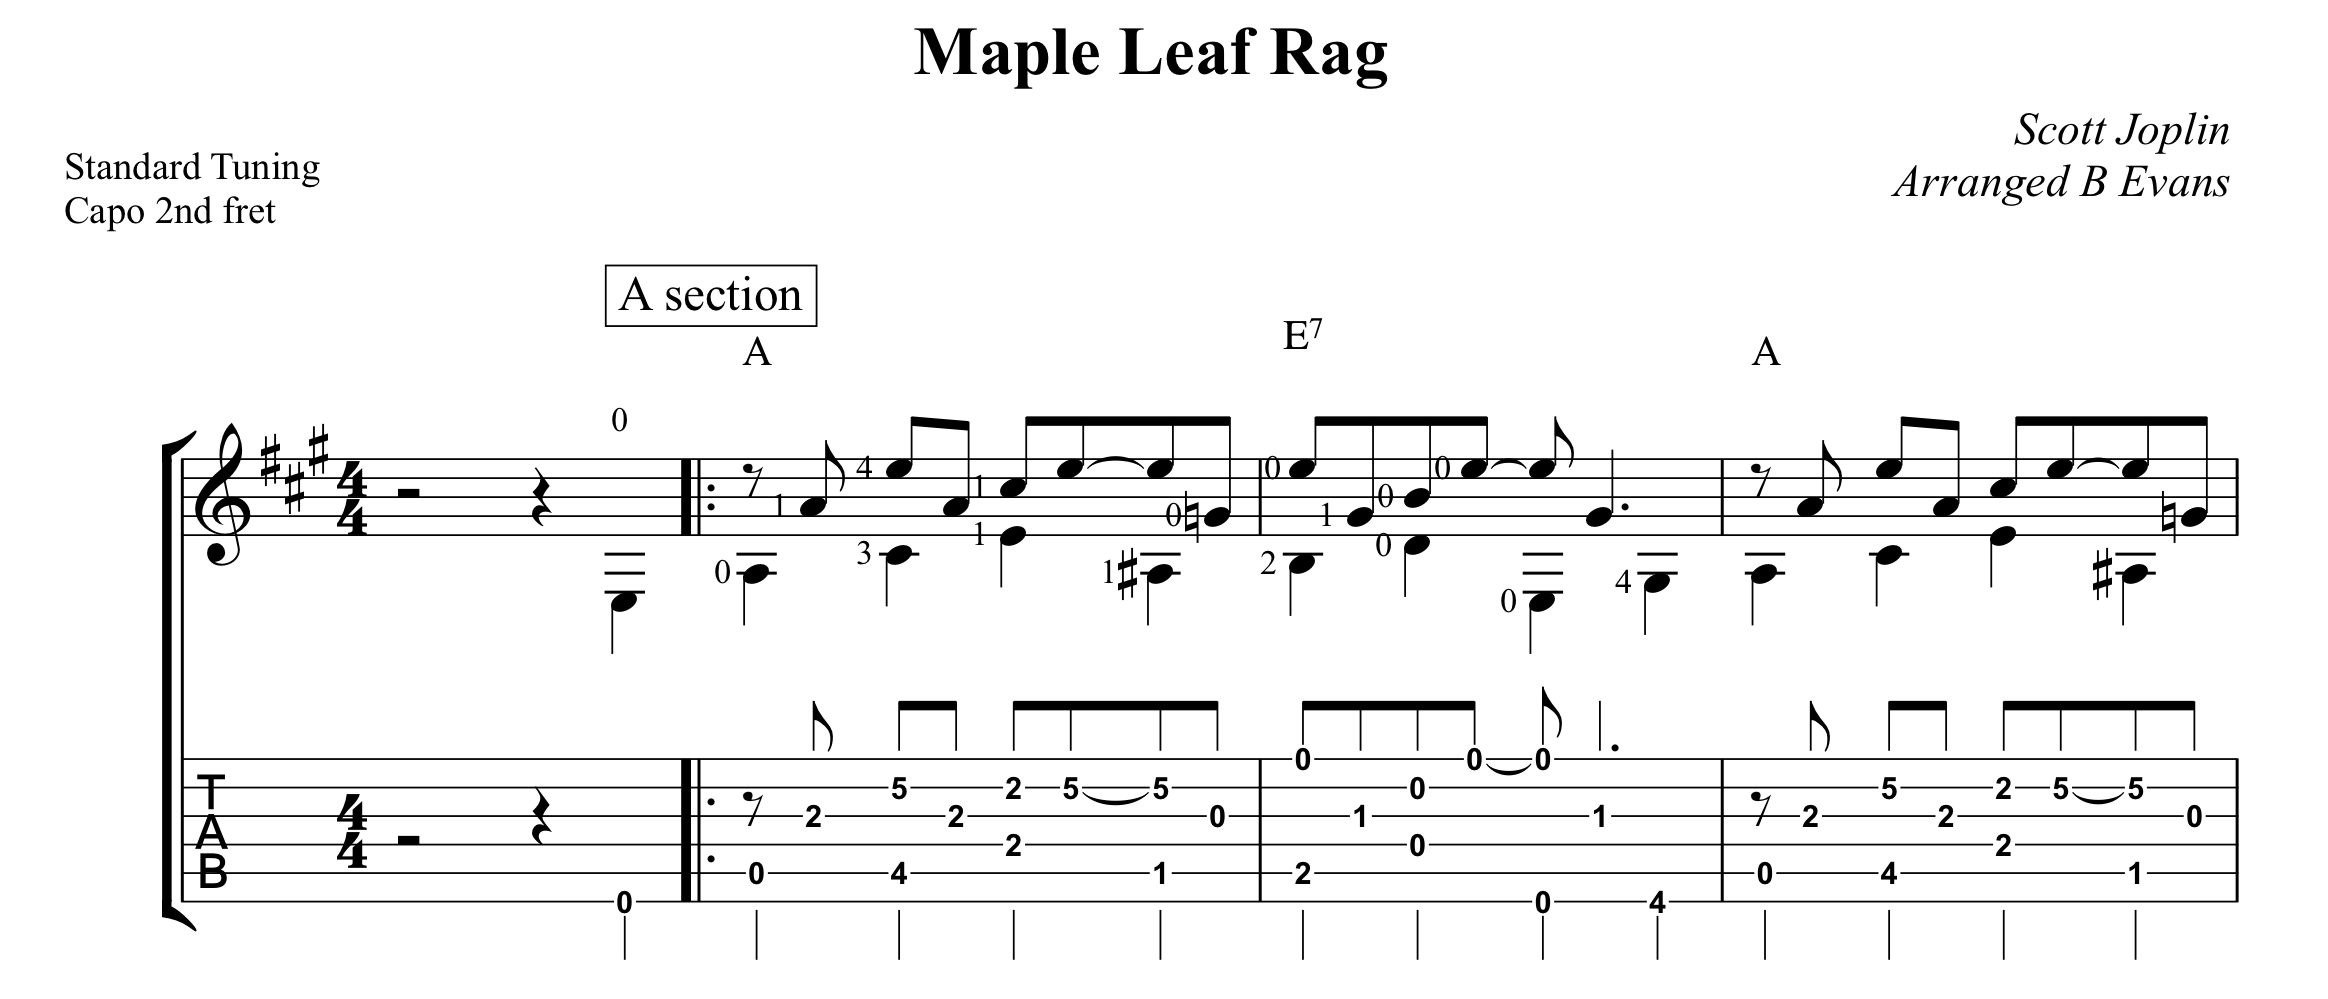 Maple Leaf Rag sample